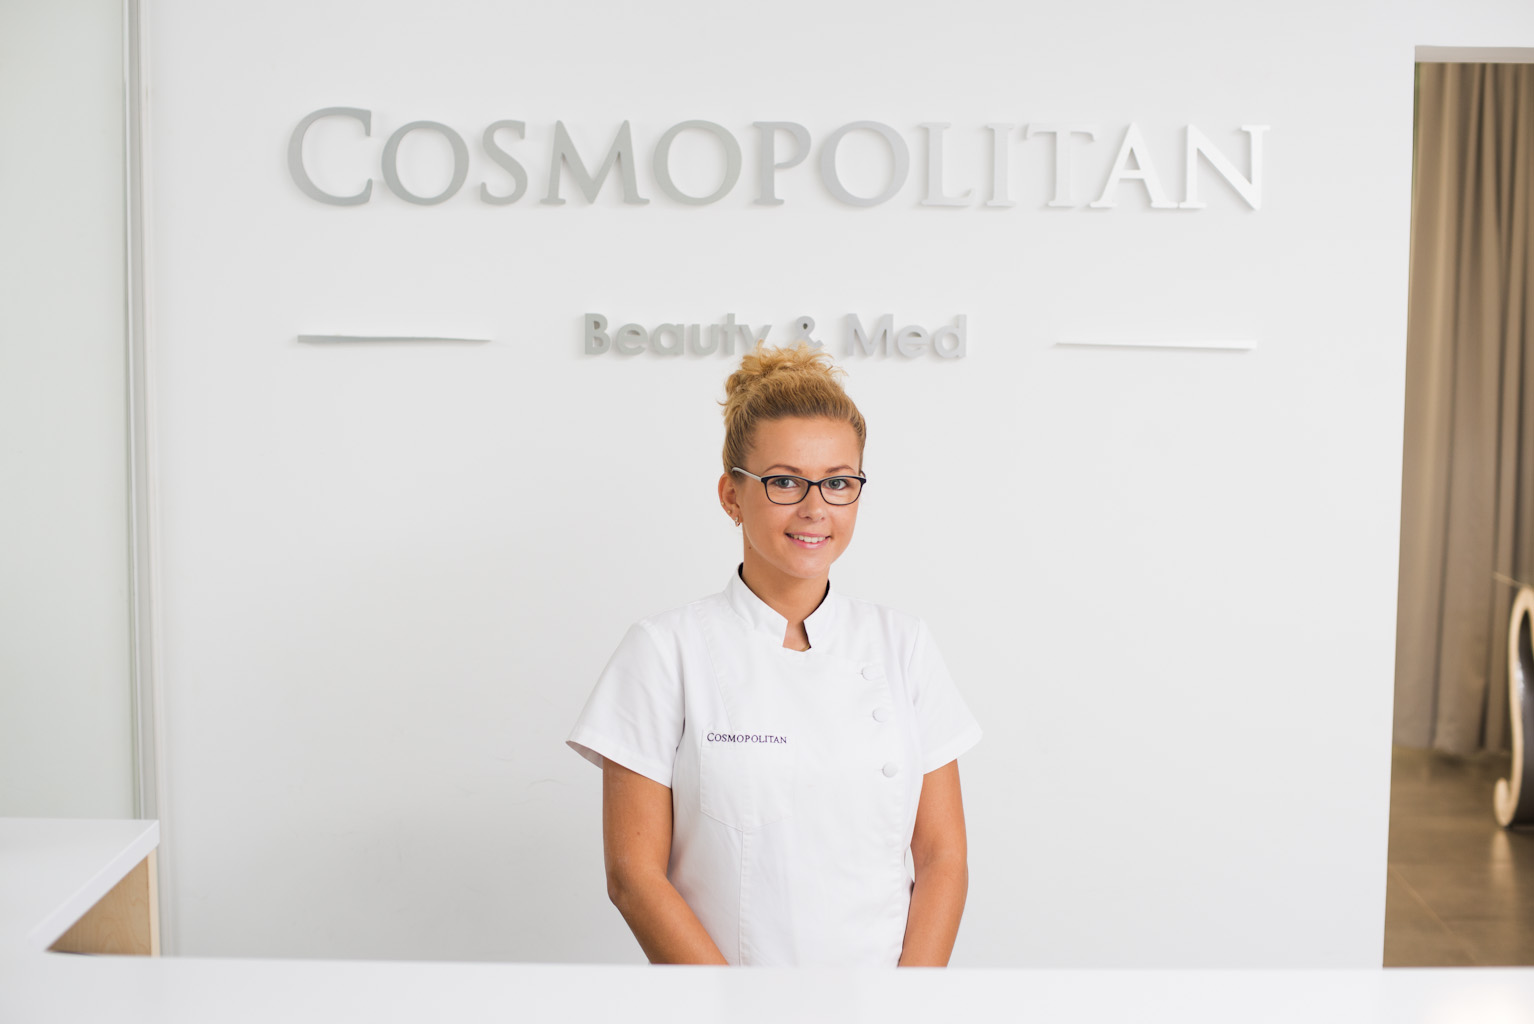 Cosmopolitan Klinika - Beauty and Med - zespół 2